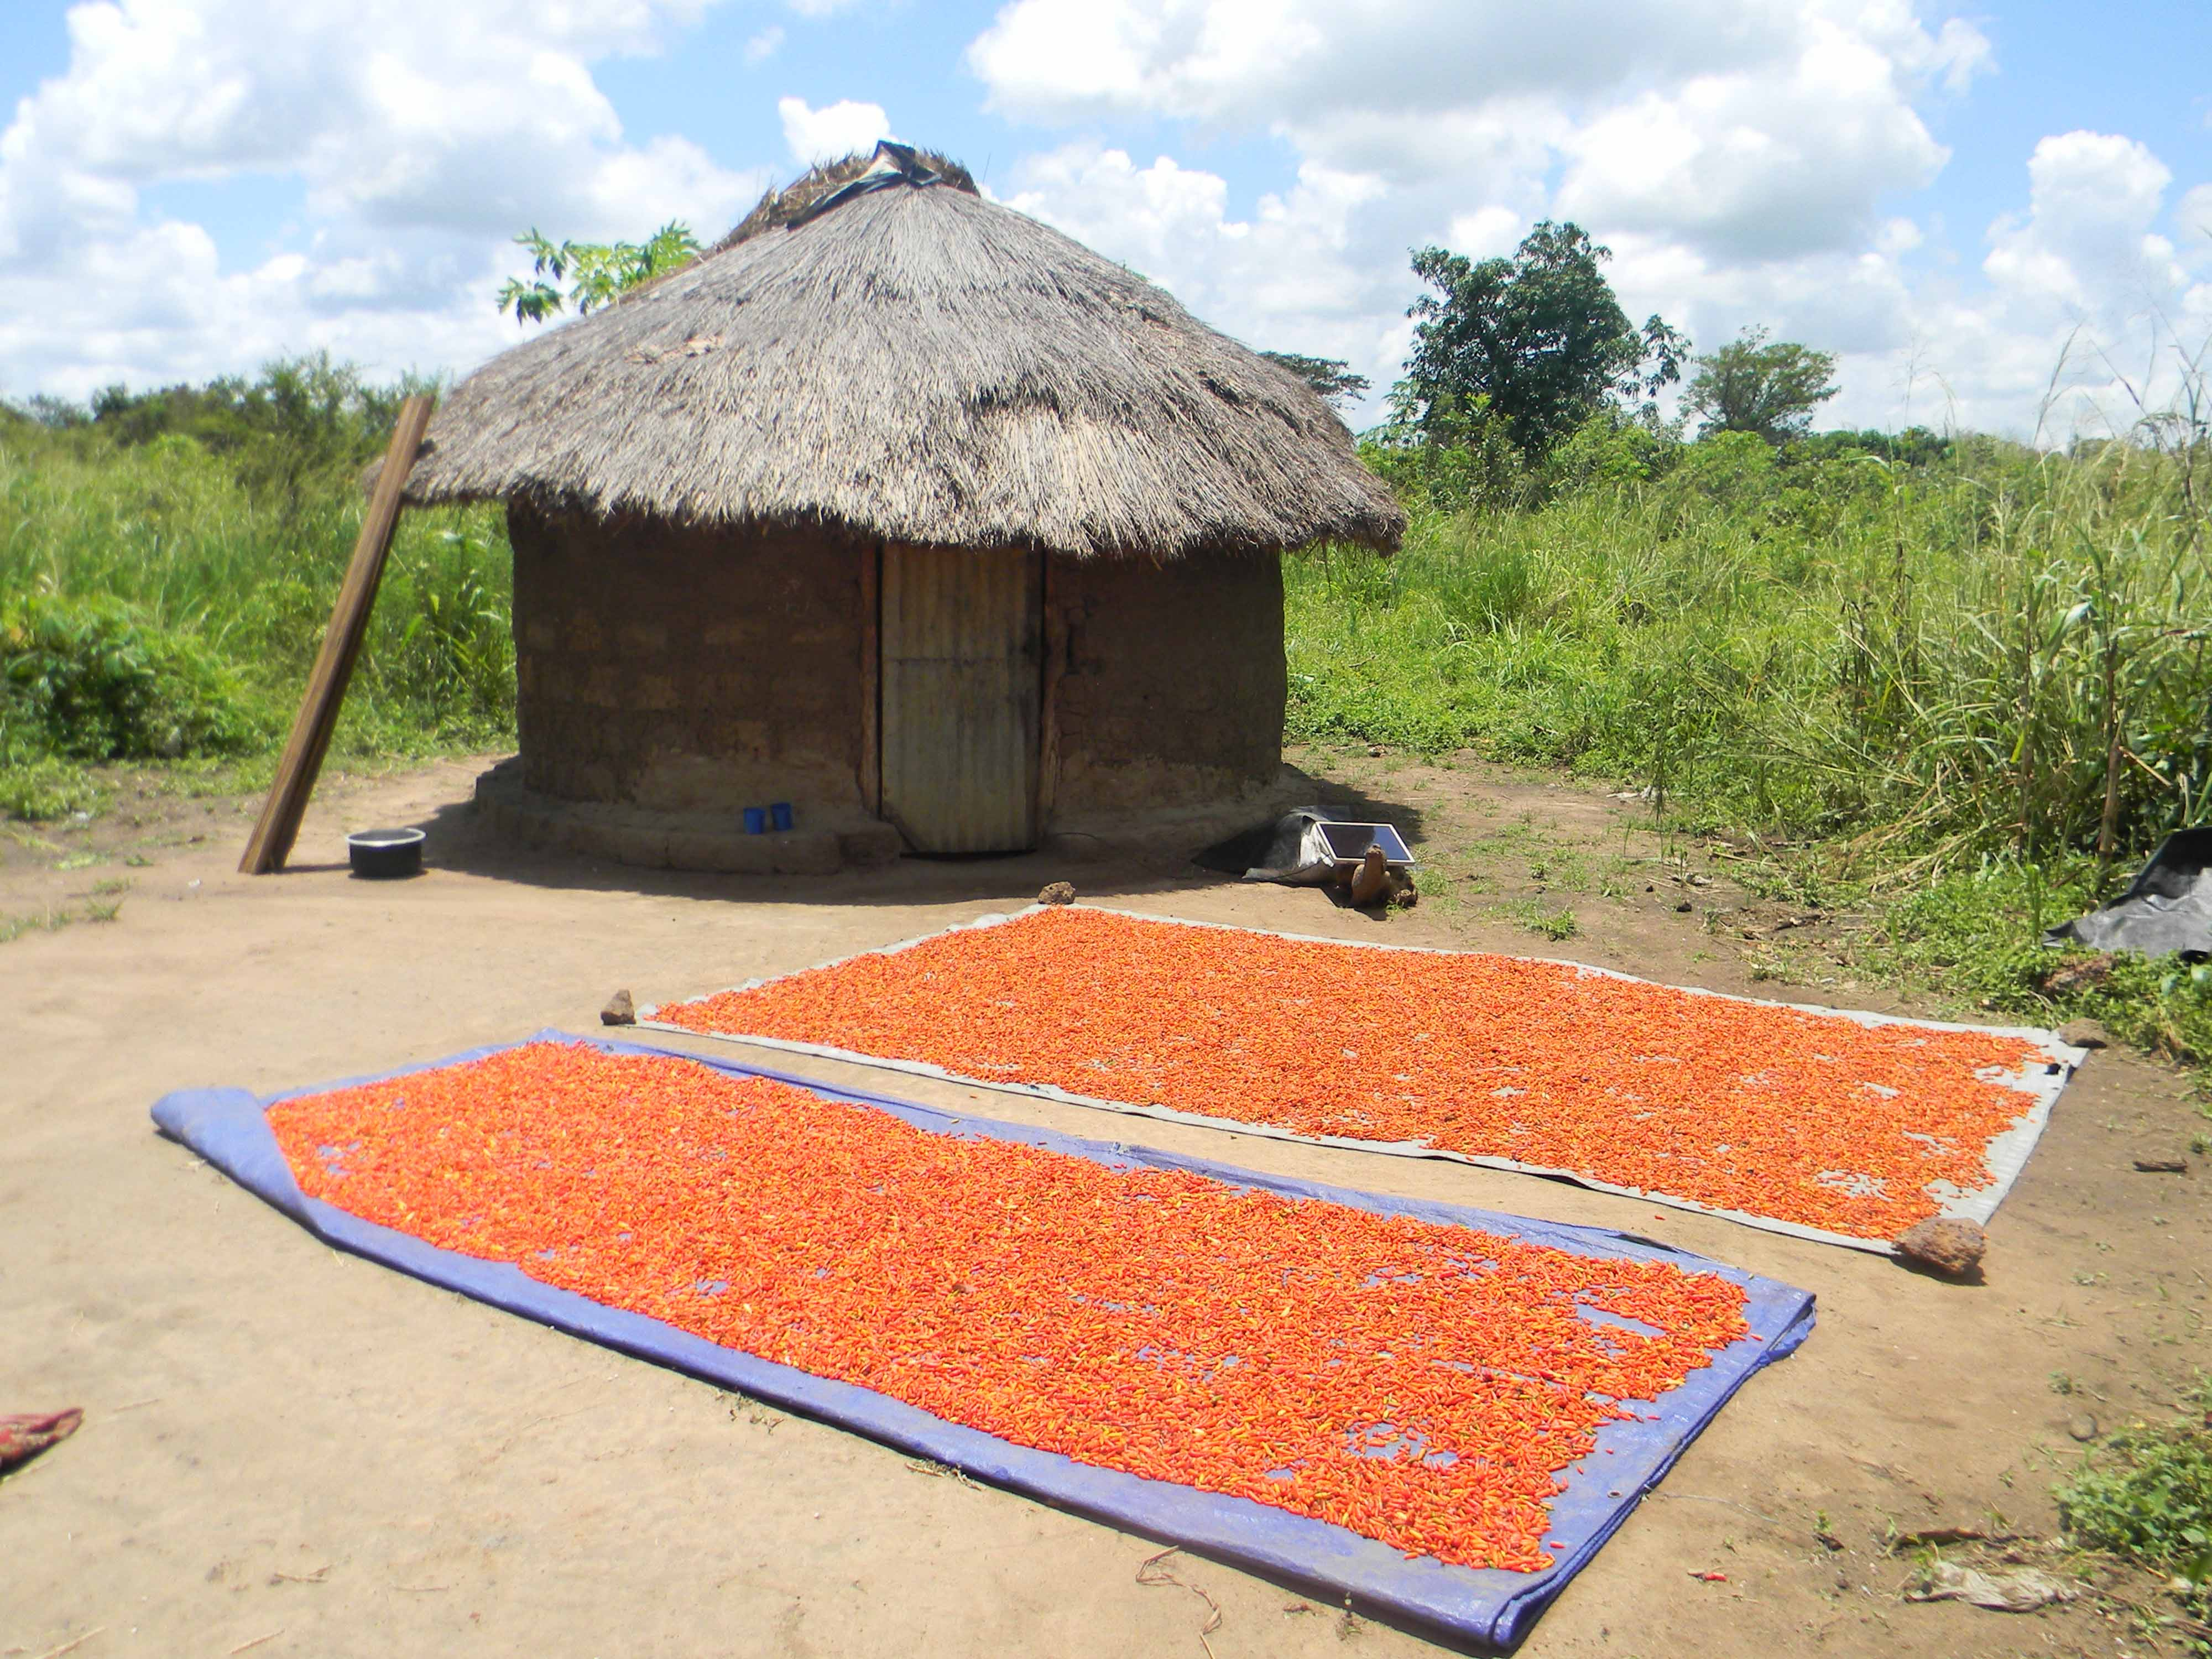 Chillies drying in the Ugandan sun